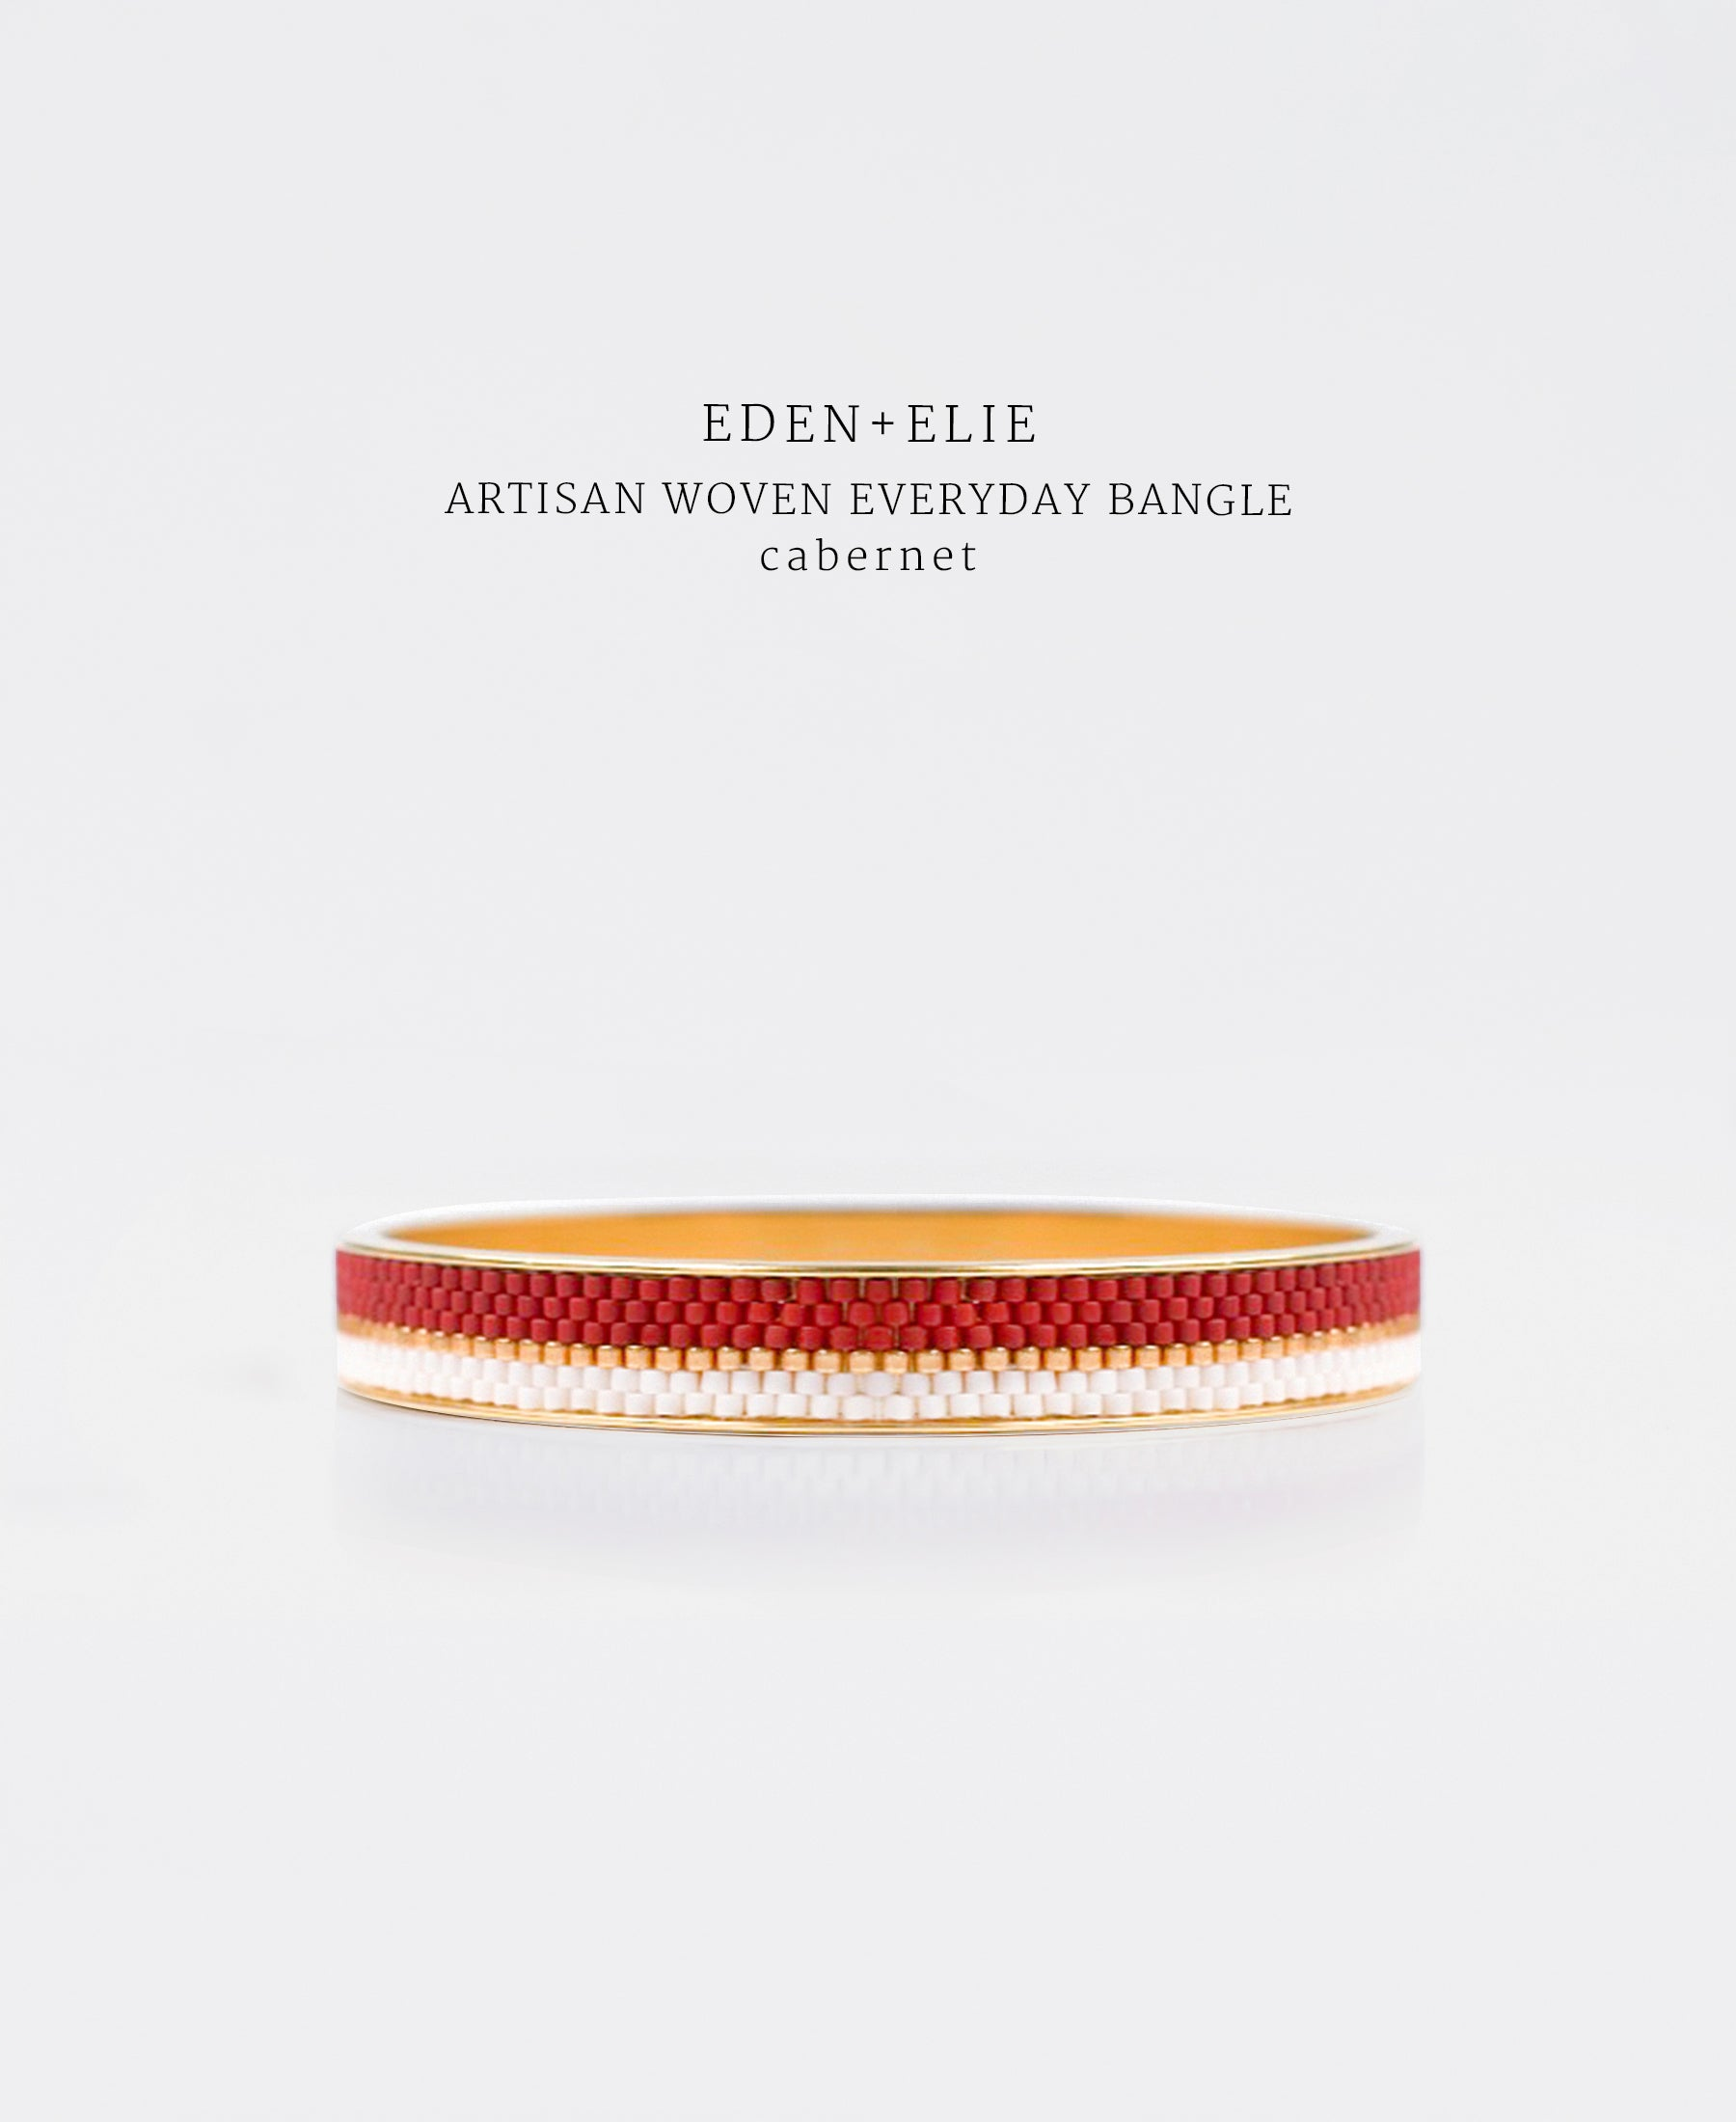 EDEN + ELIE Everyday gold narrow bangle - cabernet red